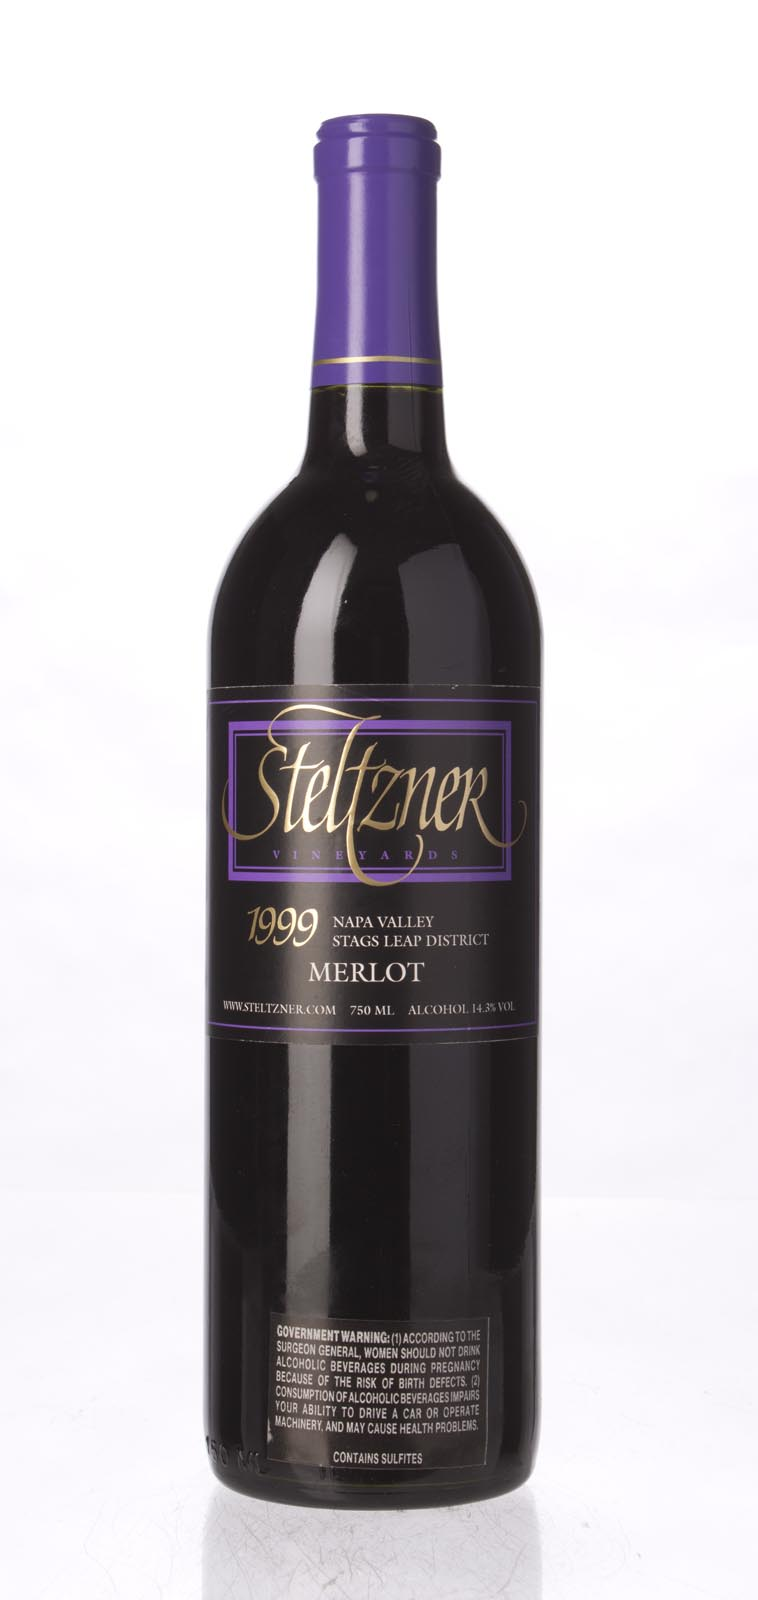 Steltzner Merlot 1999, 750ml () from The BPW - Merchants of rare and fine wines.